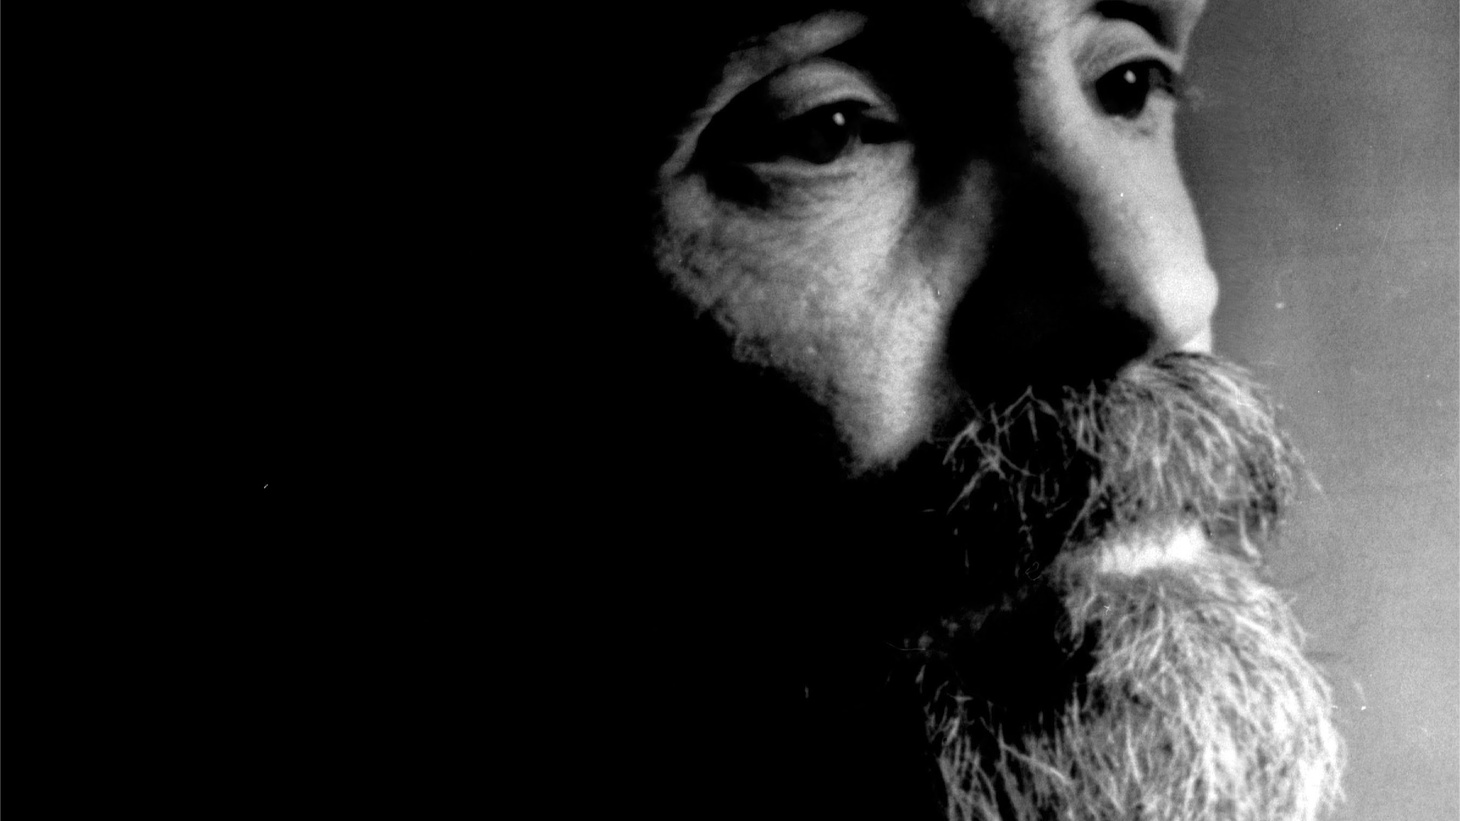 Charles Manson died Sunday night in a hospital in Kern County. He was, of course, a pathological cult leader who directed gruesome murders. He also helped redefine Los Angeles for the whole country.